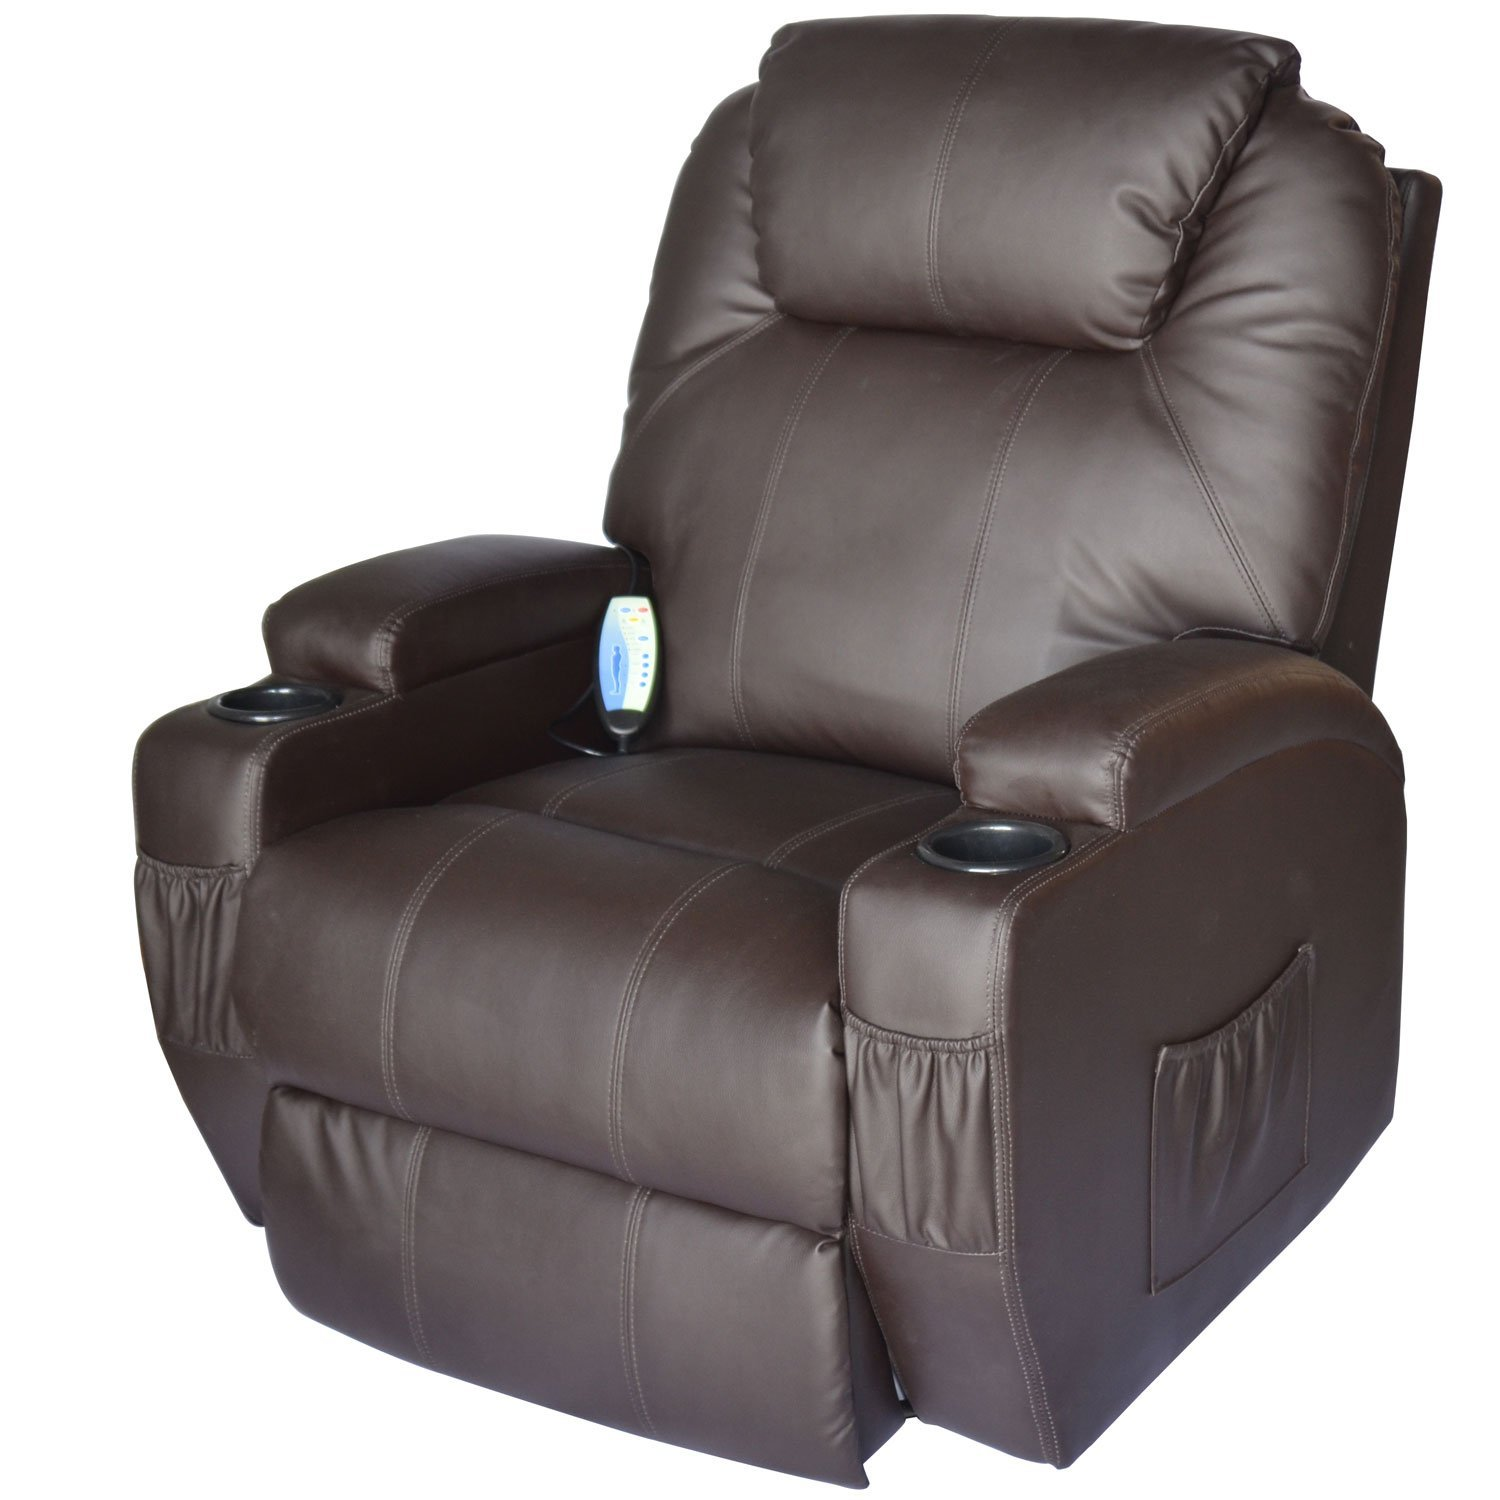 HomCom Deluxe Heated Vibrating PU Leather Massage Recliner Chair  sc 1 st  Best Recliners & Finding The Best Rocker Recliner Chair | Reviews From Best Recliner islam-shia.org